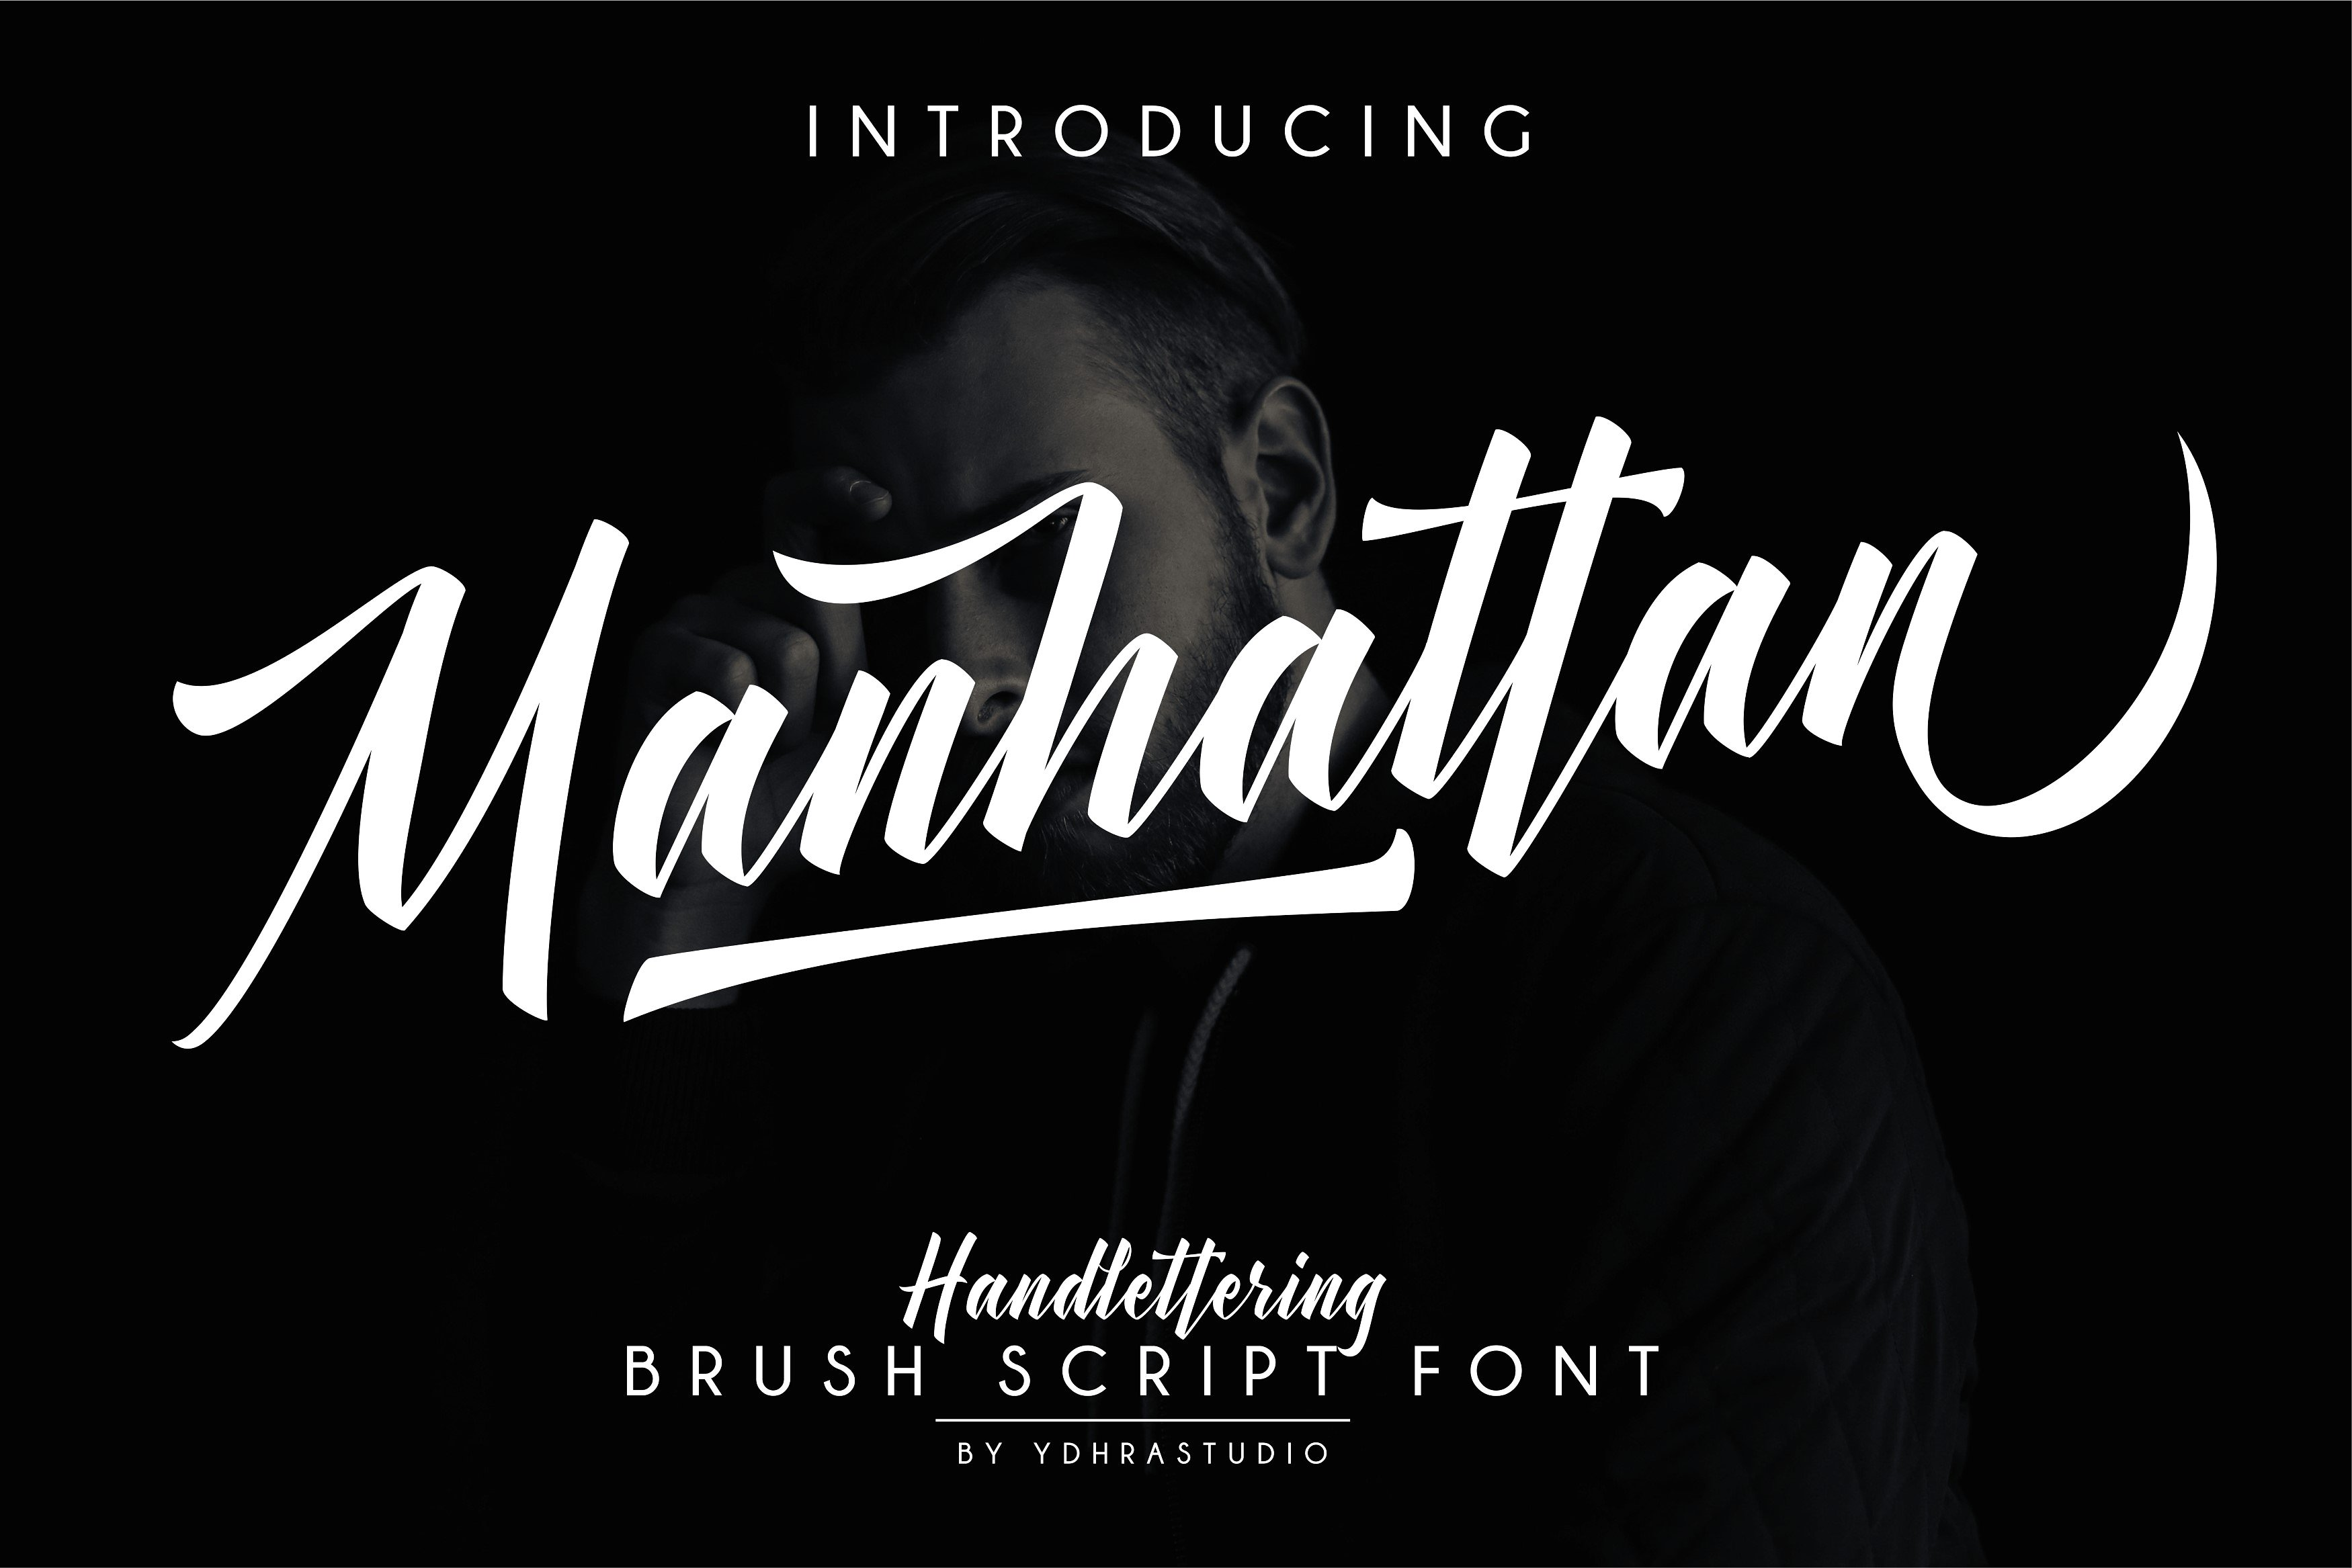 Manhattan Brush